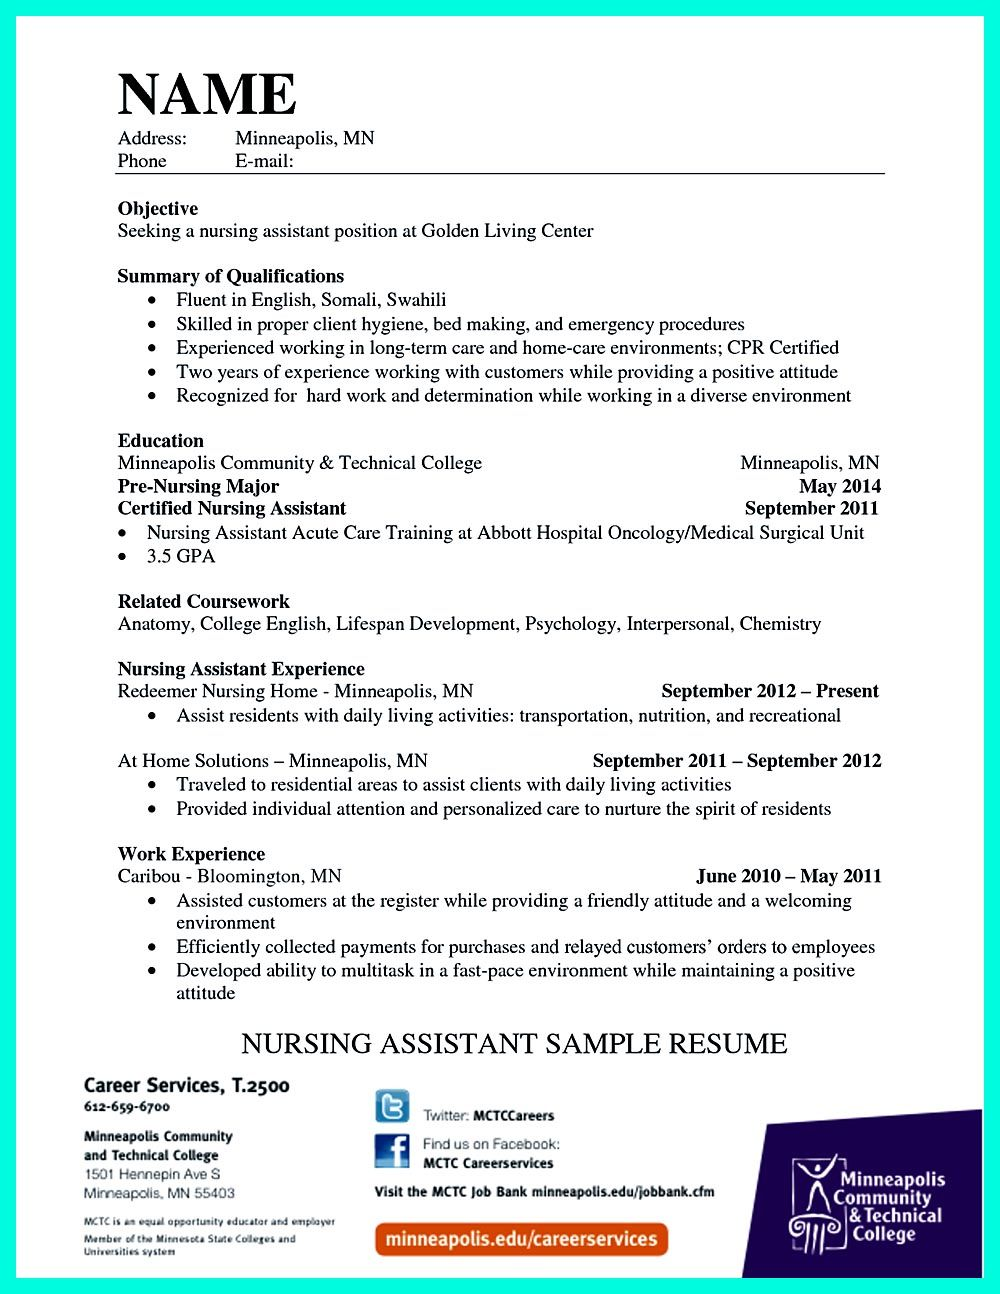 Certified Nursing Assistant Resume Examples Writing Certified Nursing Assistant Resume Is Simple If You Follow .